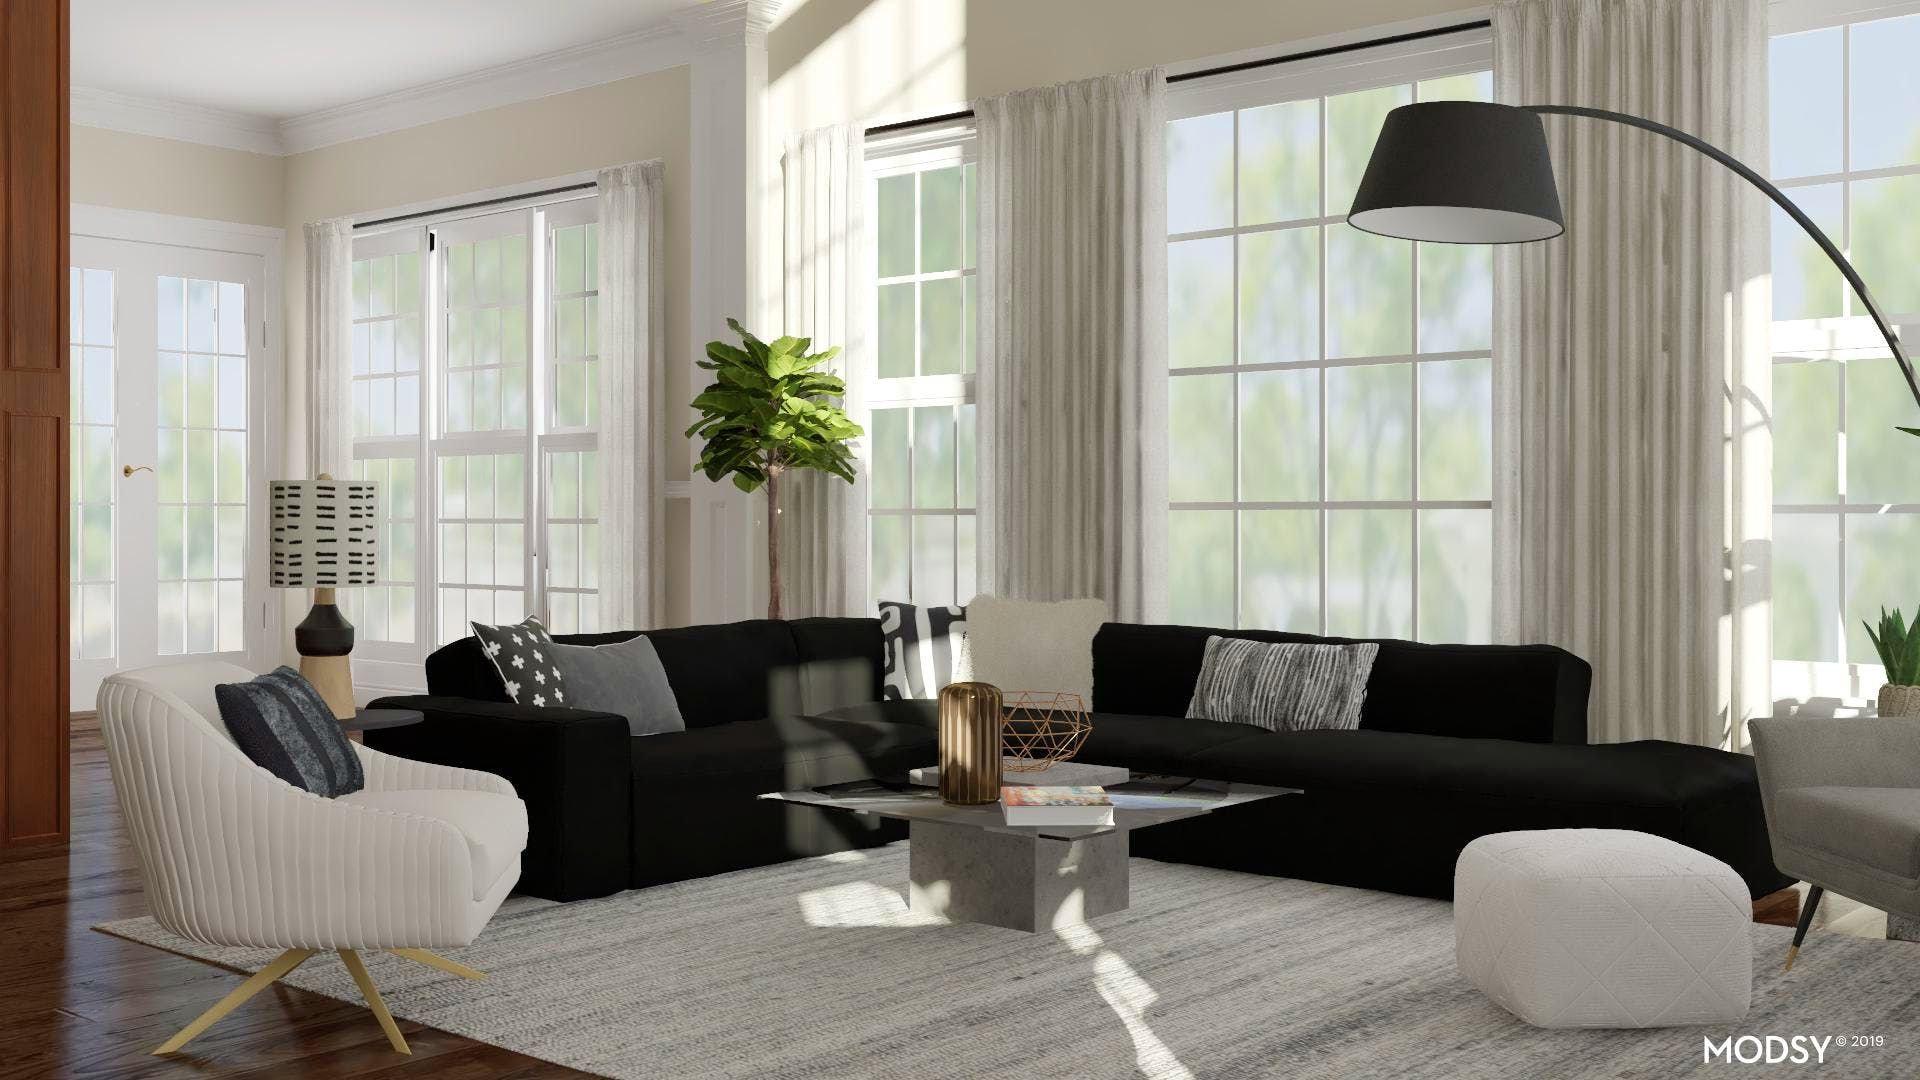 Design Ideas And Styles From Modsy Designers Modern White Living Room Black Sofa Living Room Black And White Living Room